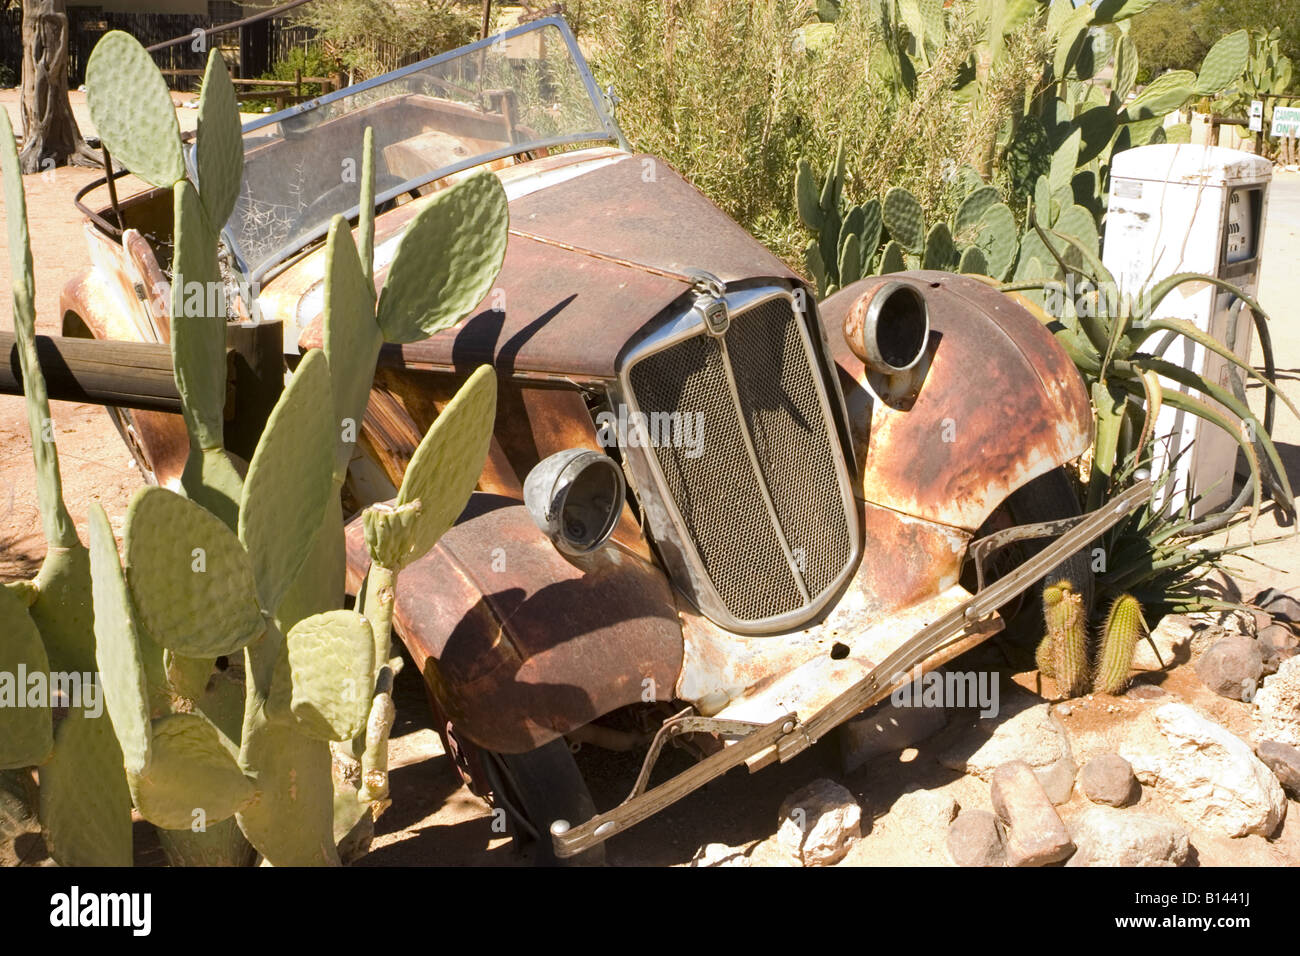 'Solitaire voiture rouille namibie' Photo Stock